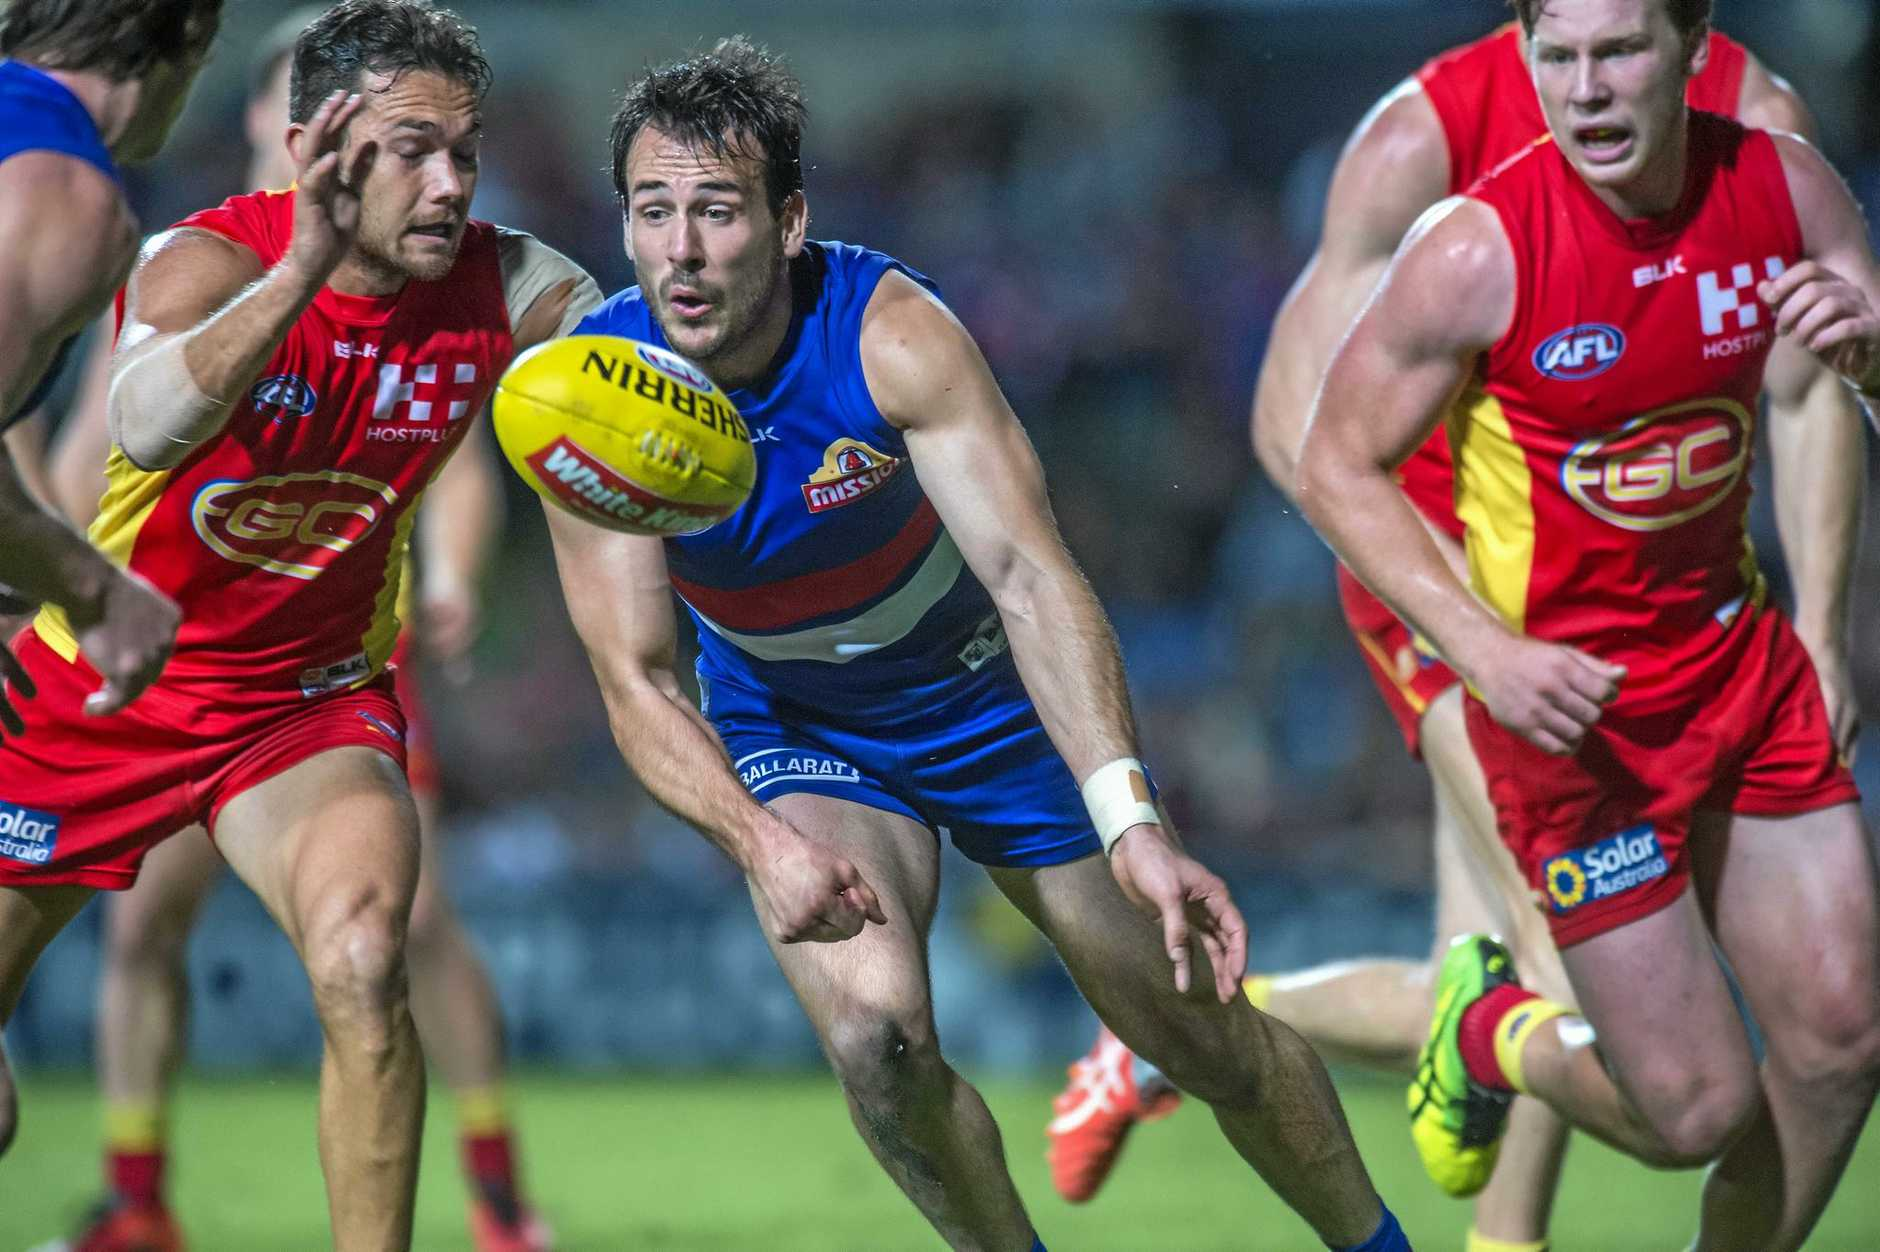 Tory Dickson of the Bulldogs gets a pass away during the Round 17 AFL match between the Western Bulldogs and the Gold Coast Suns at Cazalys Stadium, Cairns, Saturday, July 16, 2016. (AAP Image/Brian Cassey) NO ARCHIVING, EDITORIAL USE ONLY